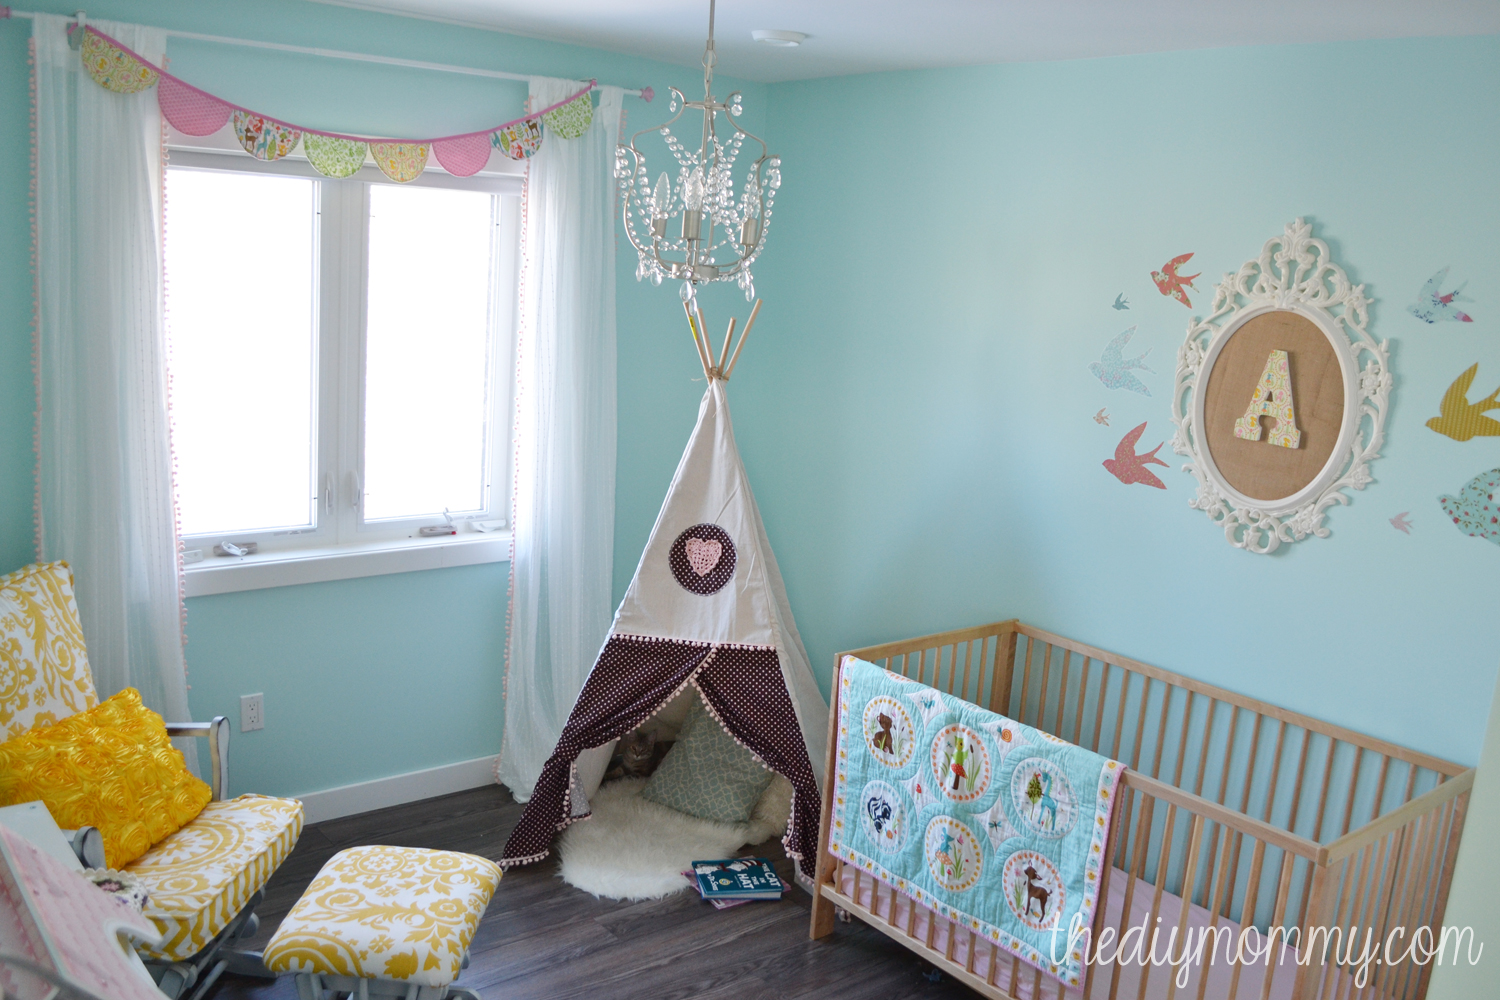 Amelia S Room Toddler Bedroom: Our DIY House: The Progress (Taking It One Room At A Time